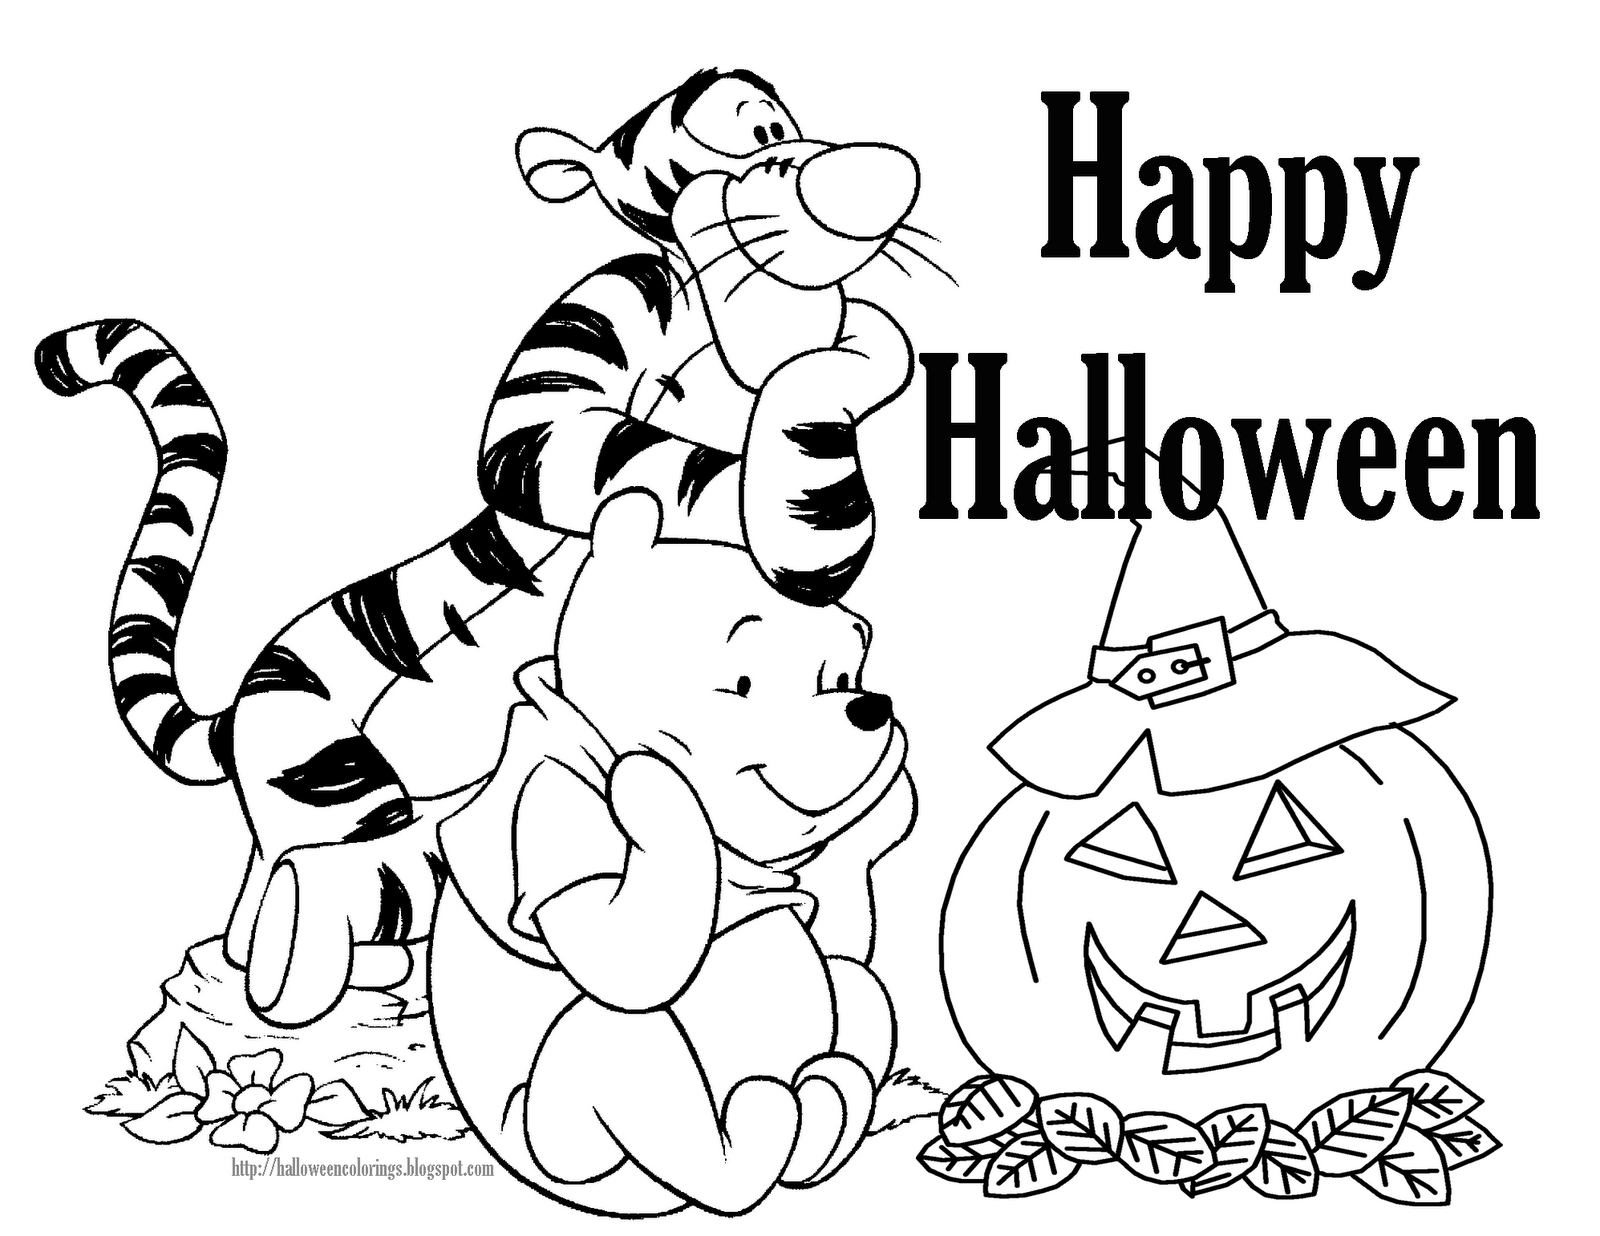 1600x1236 Easy^ Halloween Coloring Pages To Draw, Print, Free Download